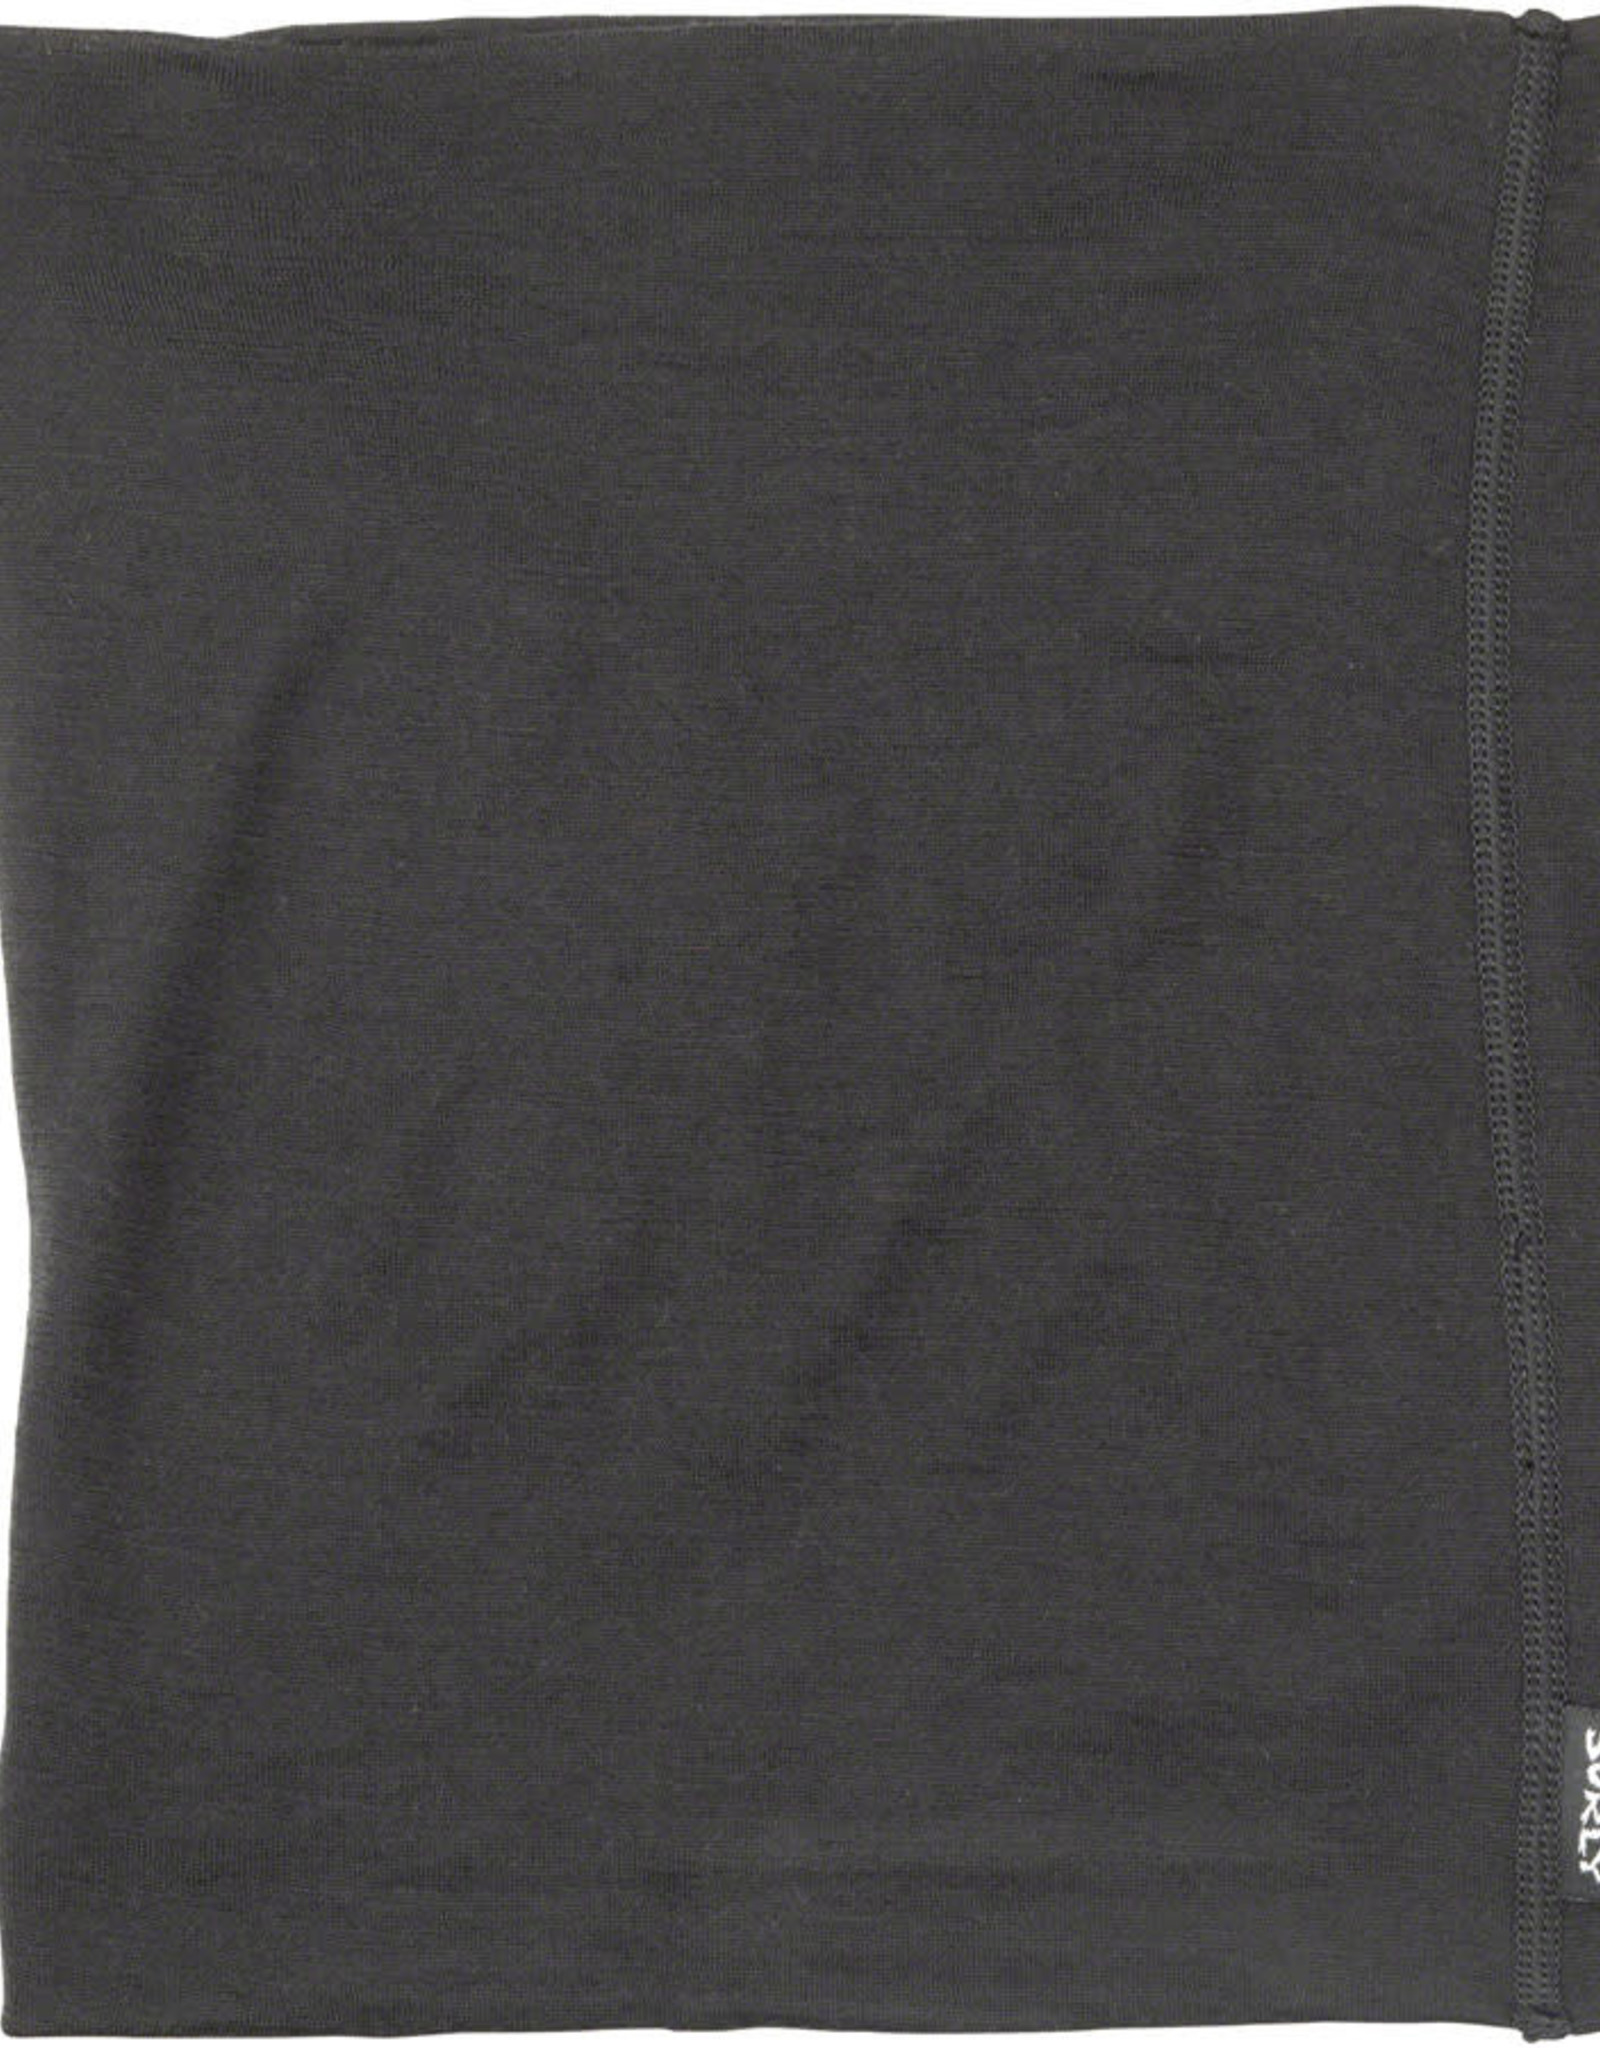 Surly Lightweight Neck Toob - Wool, Black, 150gm, One Size